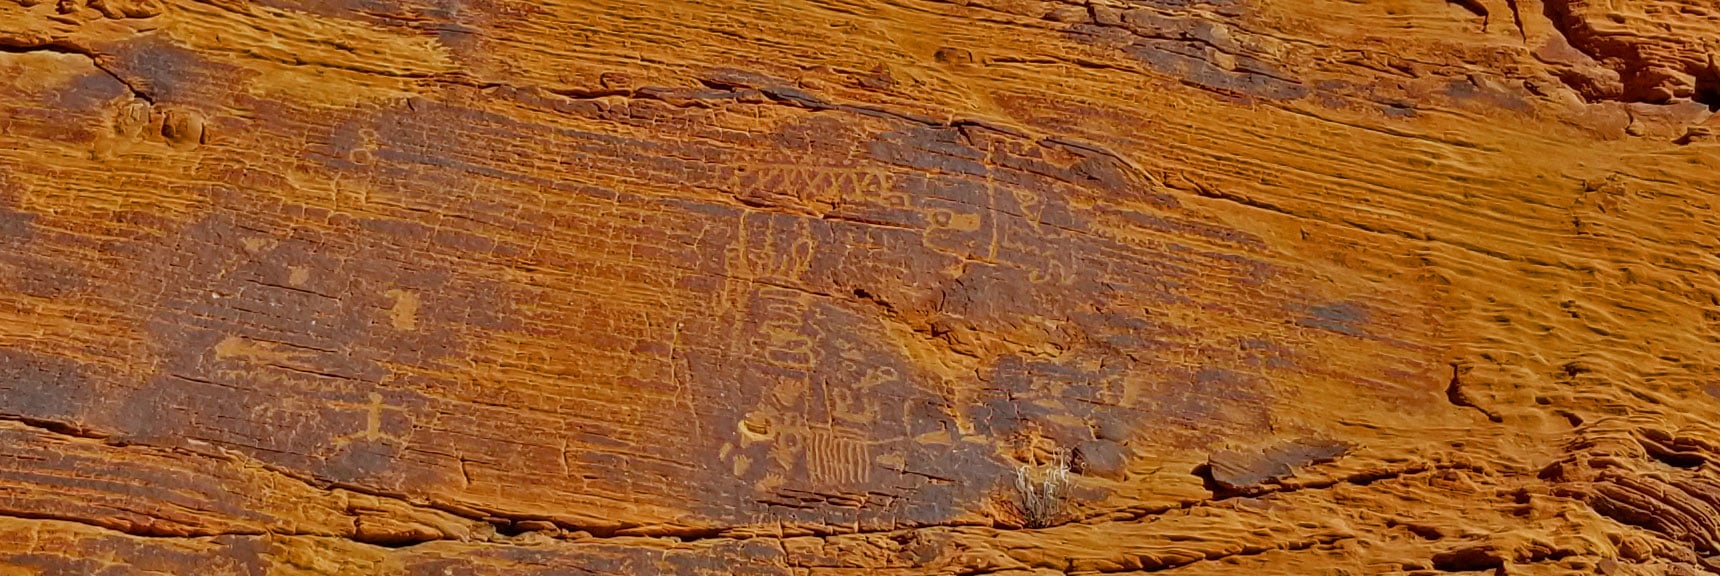 Petroglyphs on Mouse's Tank Trail in Valley of Fire State Park, Nevada, Slide 17